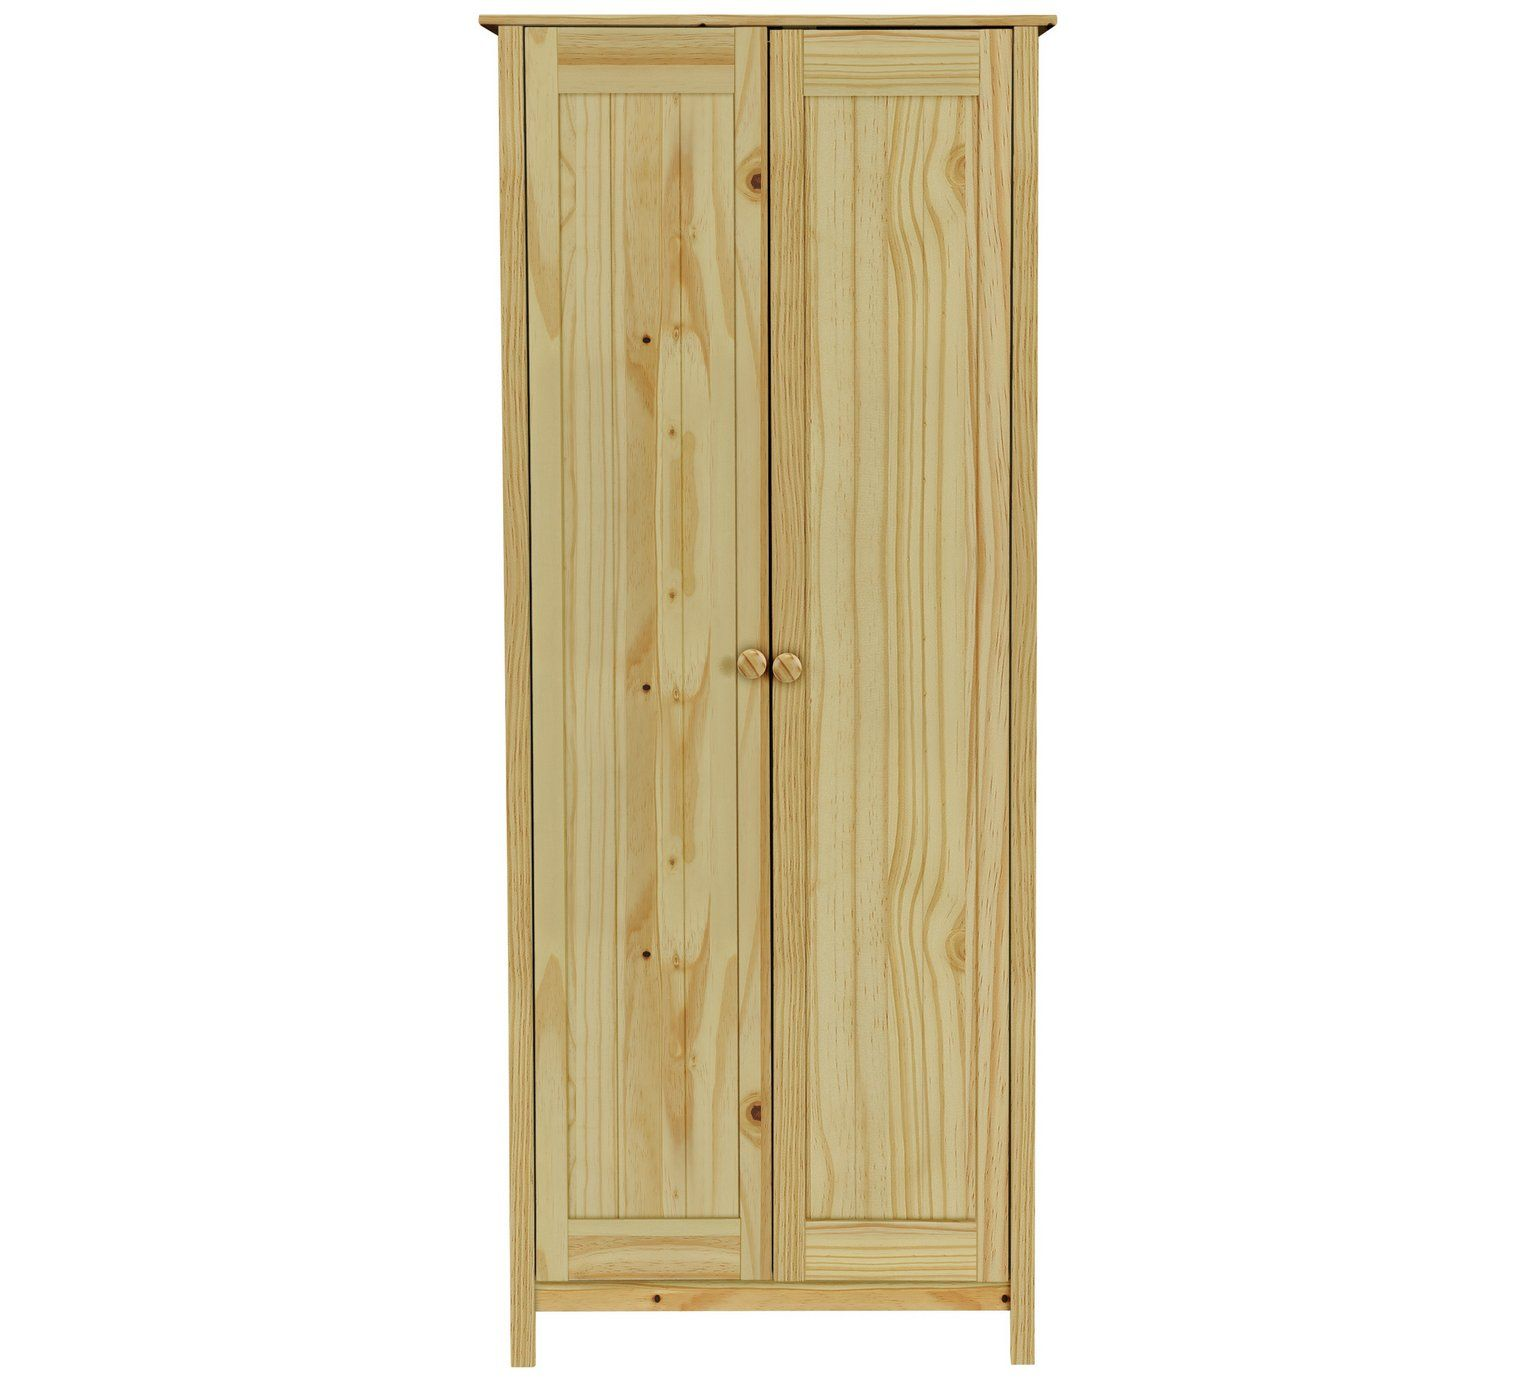 shopping with online table for wall bedroom wooden designs also best dressing wardrobe cupboard of ideas almirah design buy